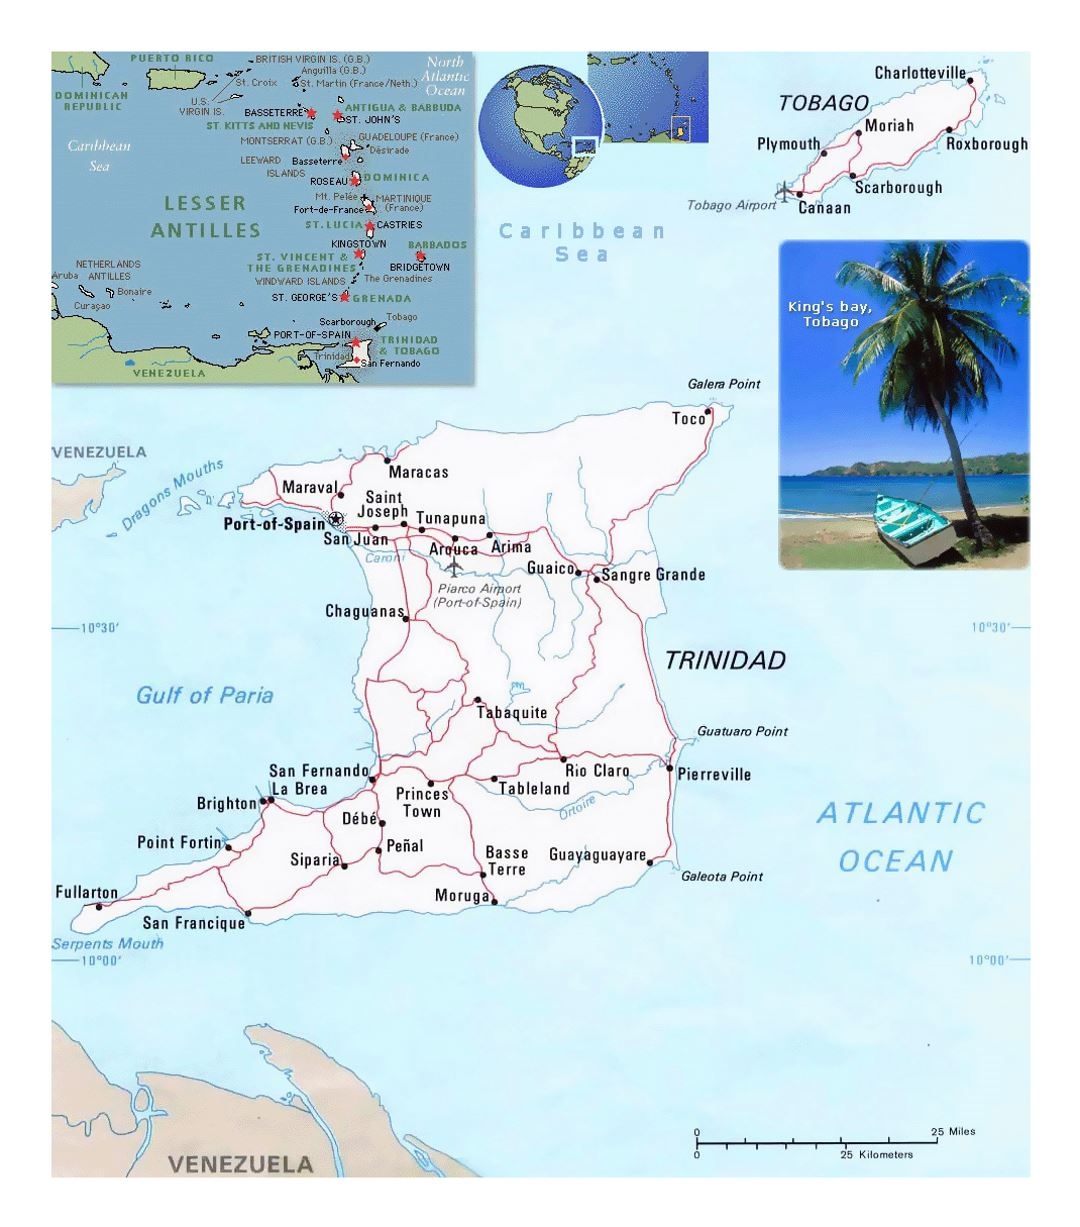 Detailed political map of Trinidad and Tobago with roads, cities and airports